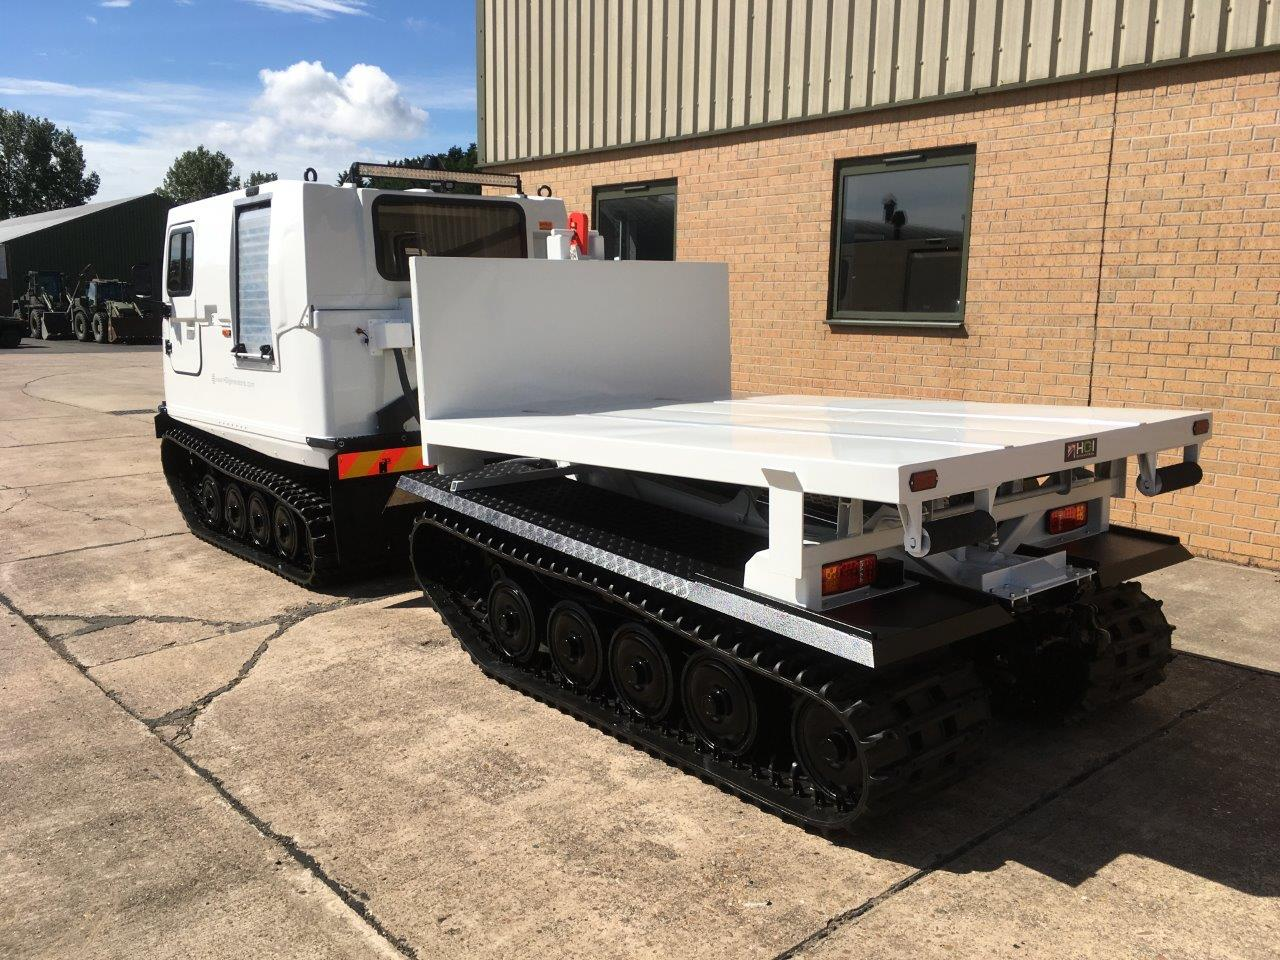 Just arrived 89 Hagglunds Bv206